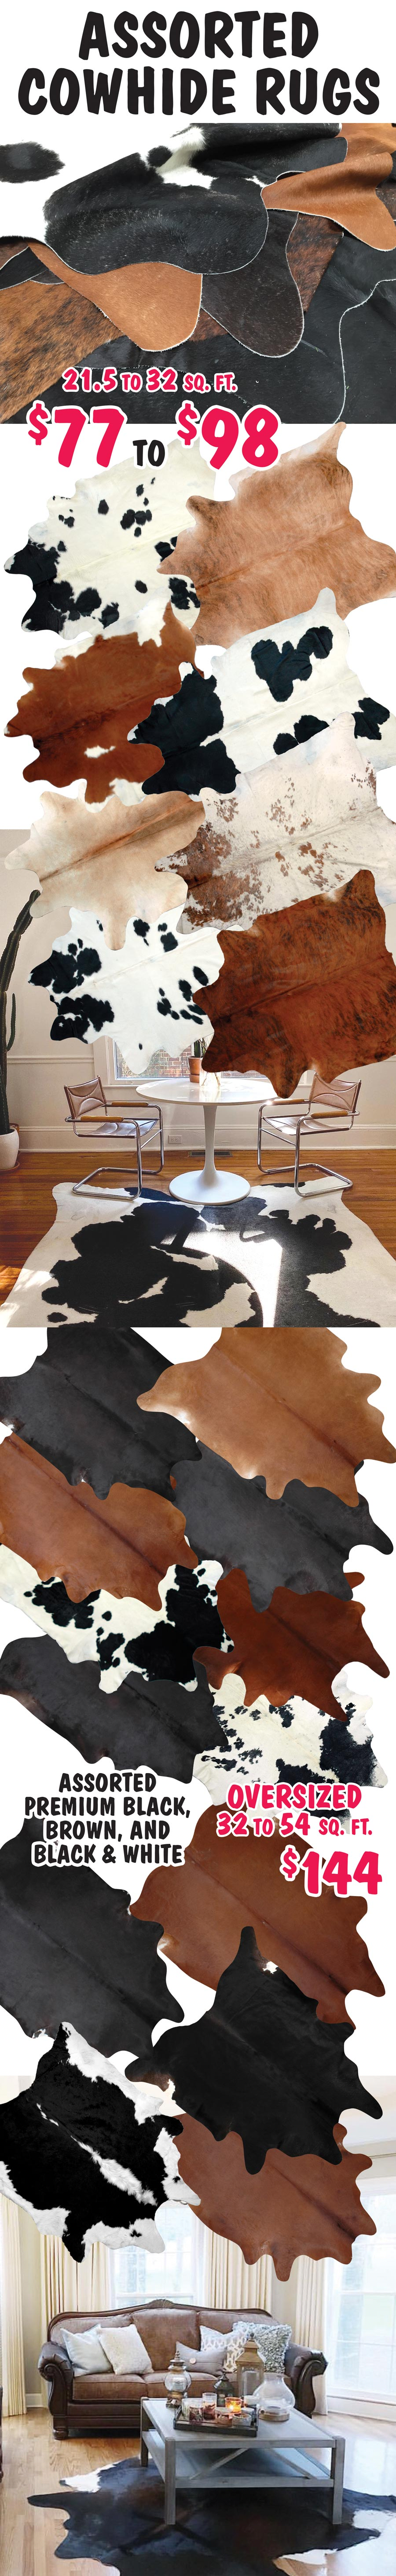 Assorted Cowhide Rugs $77 to $98